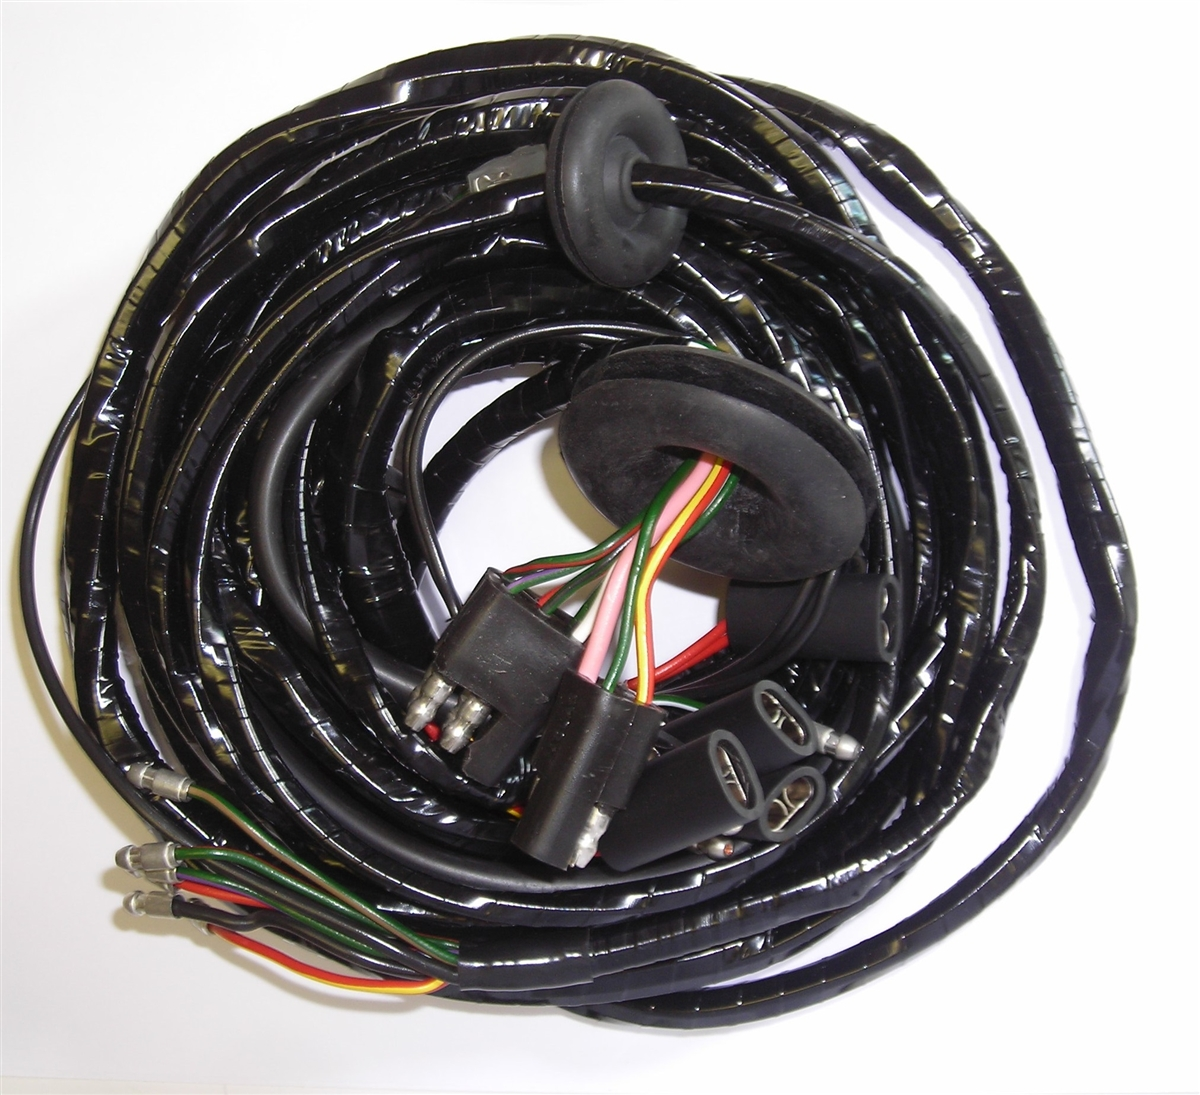 LR337 2?1402650264 rover body wiring harness land rover wiring harness at panicattacktreatment.co